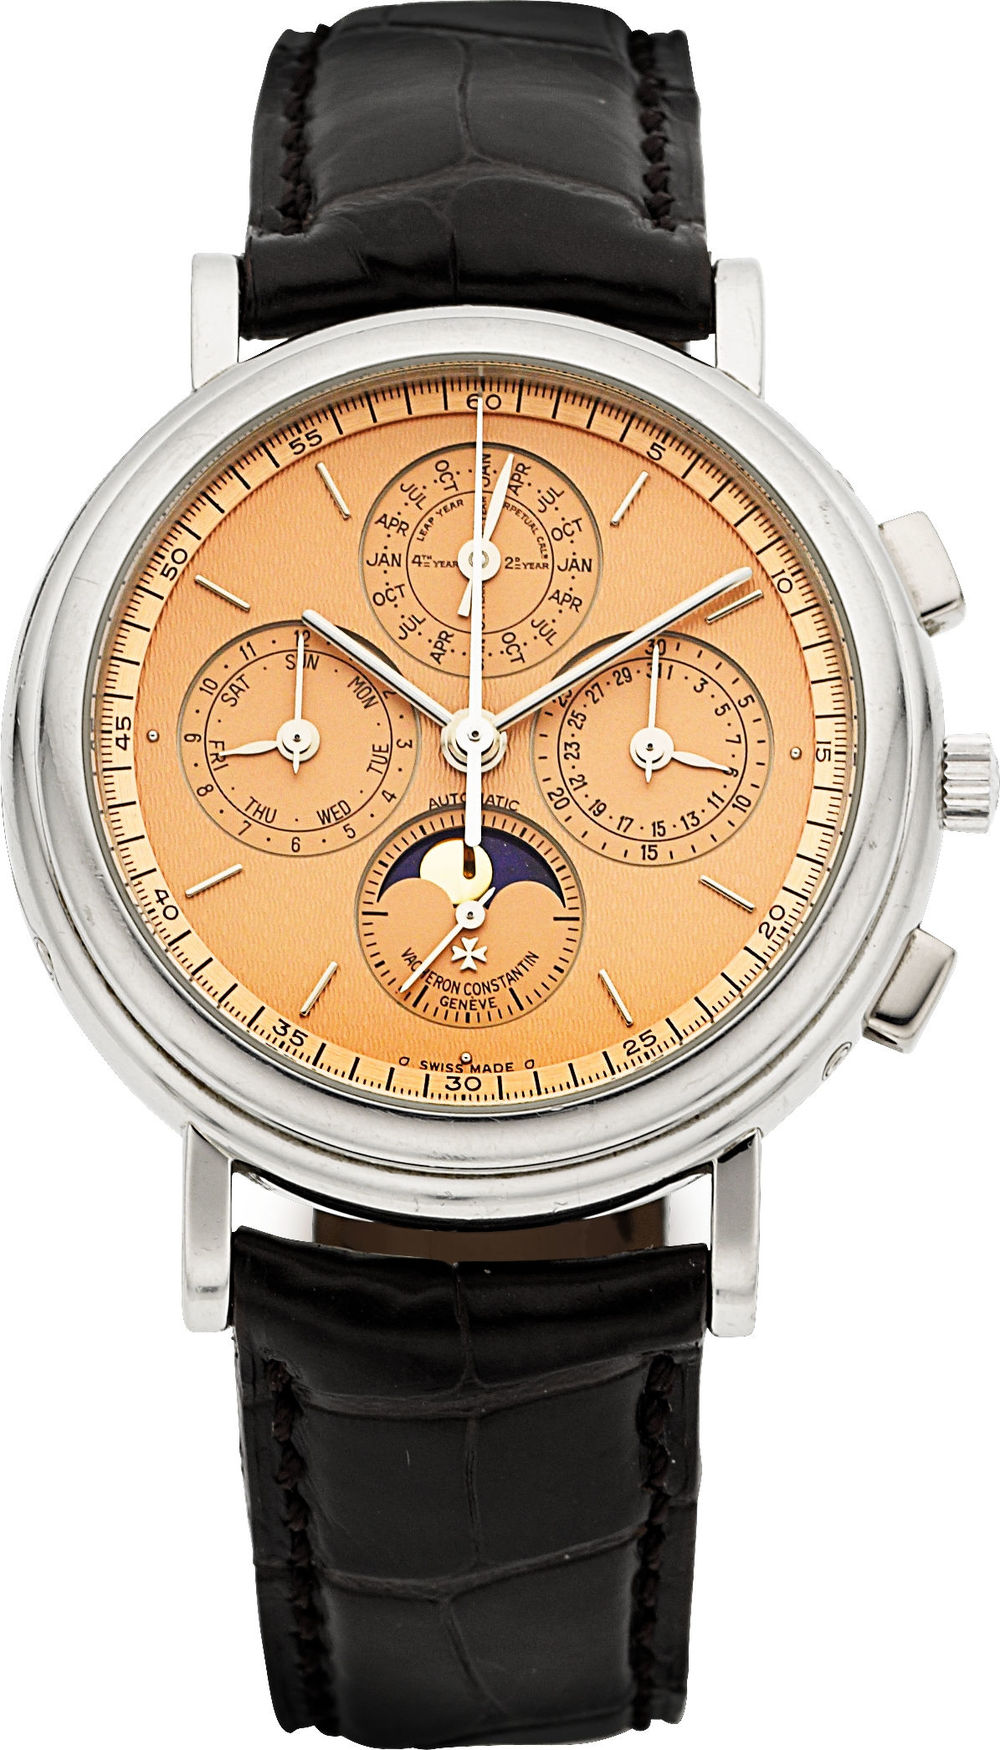 A Vacheron perpetual calendar chronograph sold by Heritage Auctions in May for $24,375 with premium.